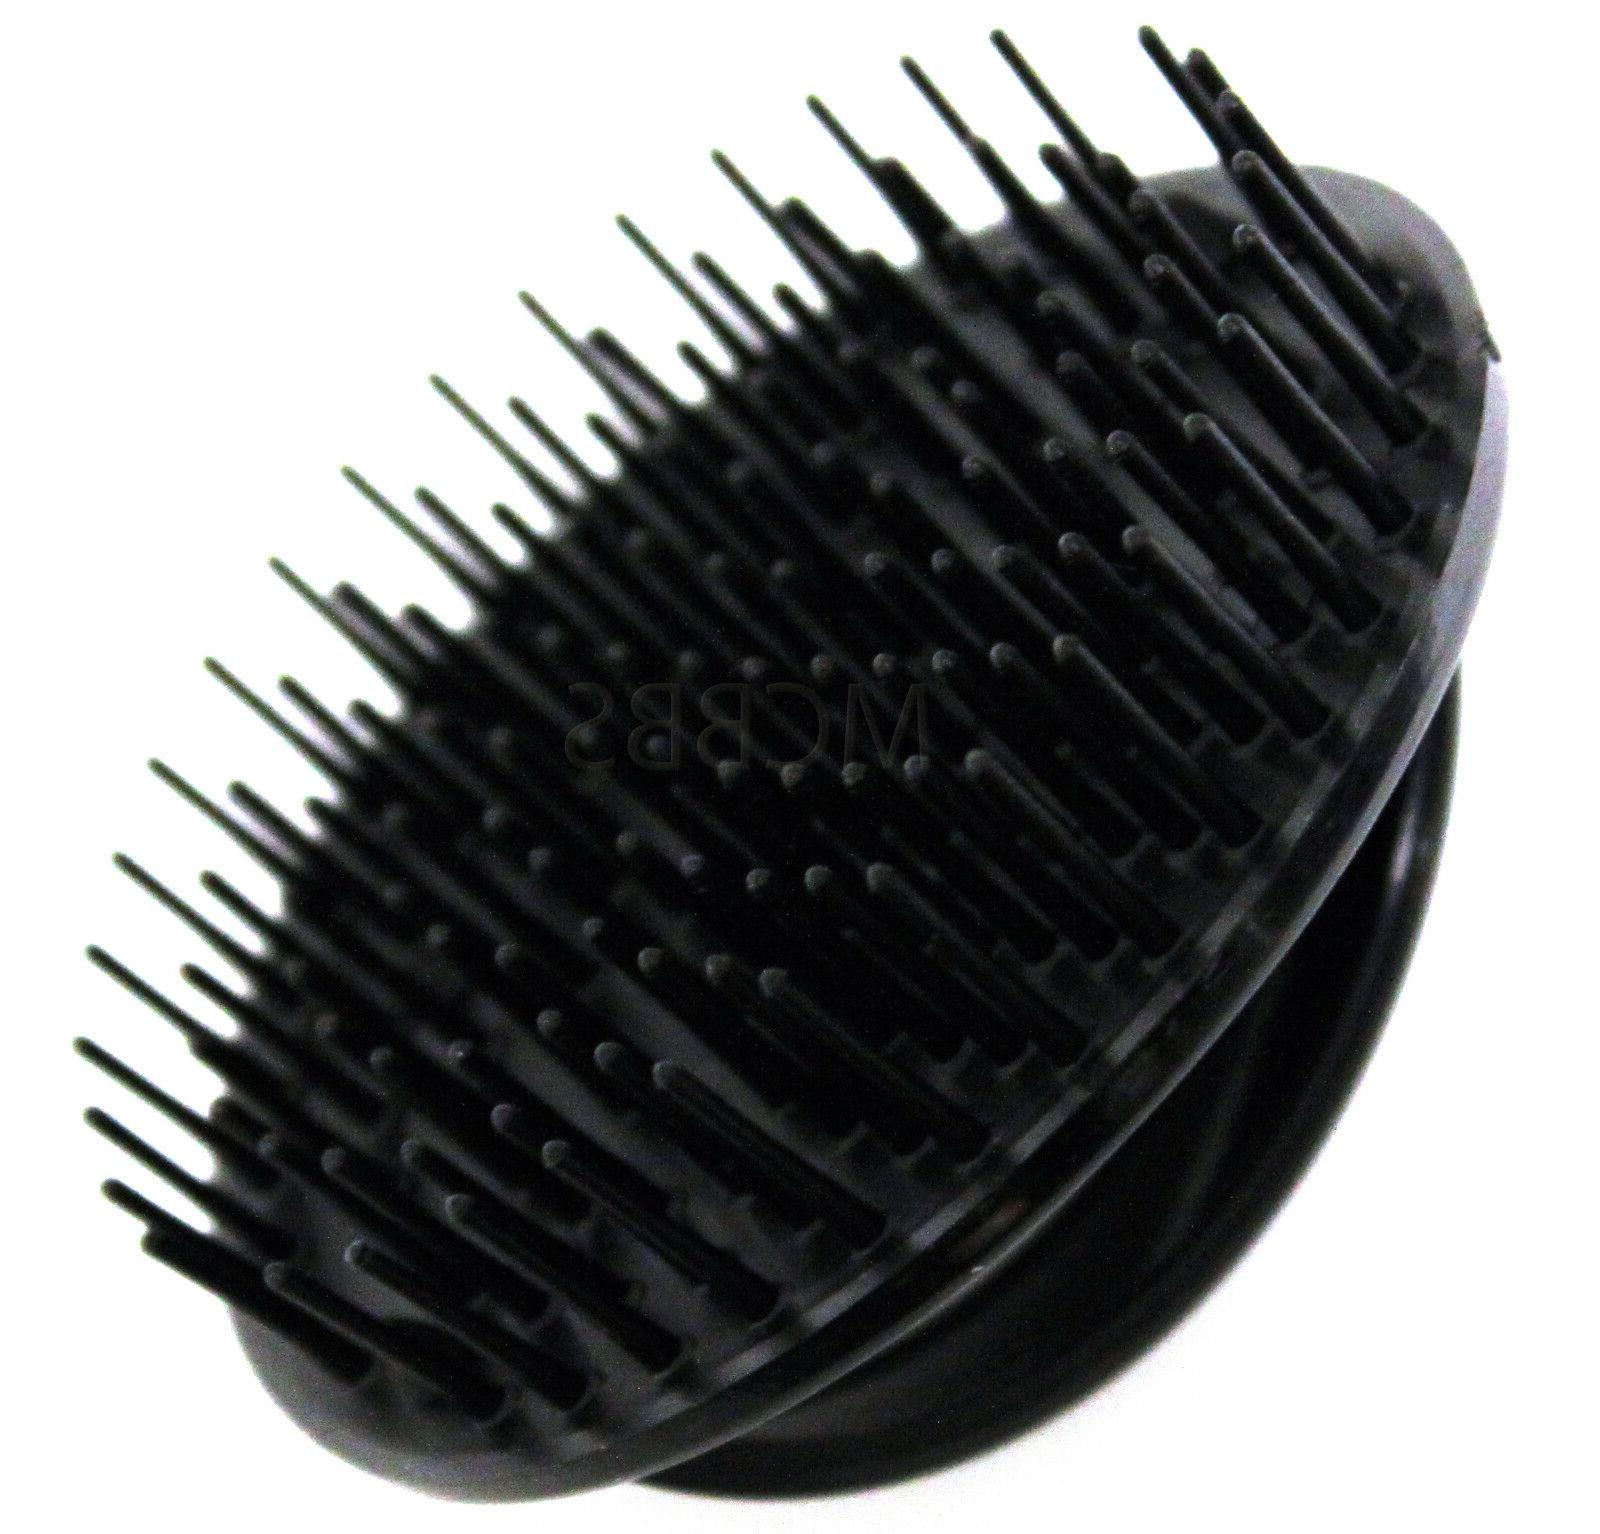 be bop massage shampoo brush with handle